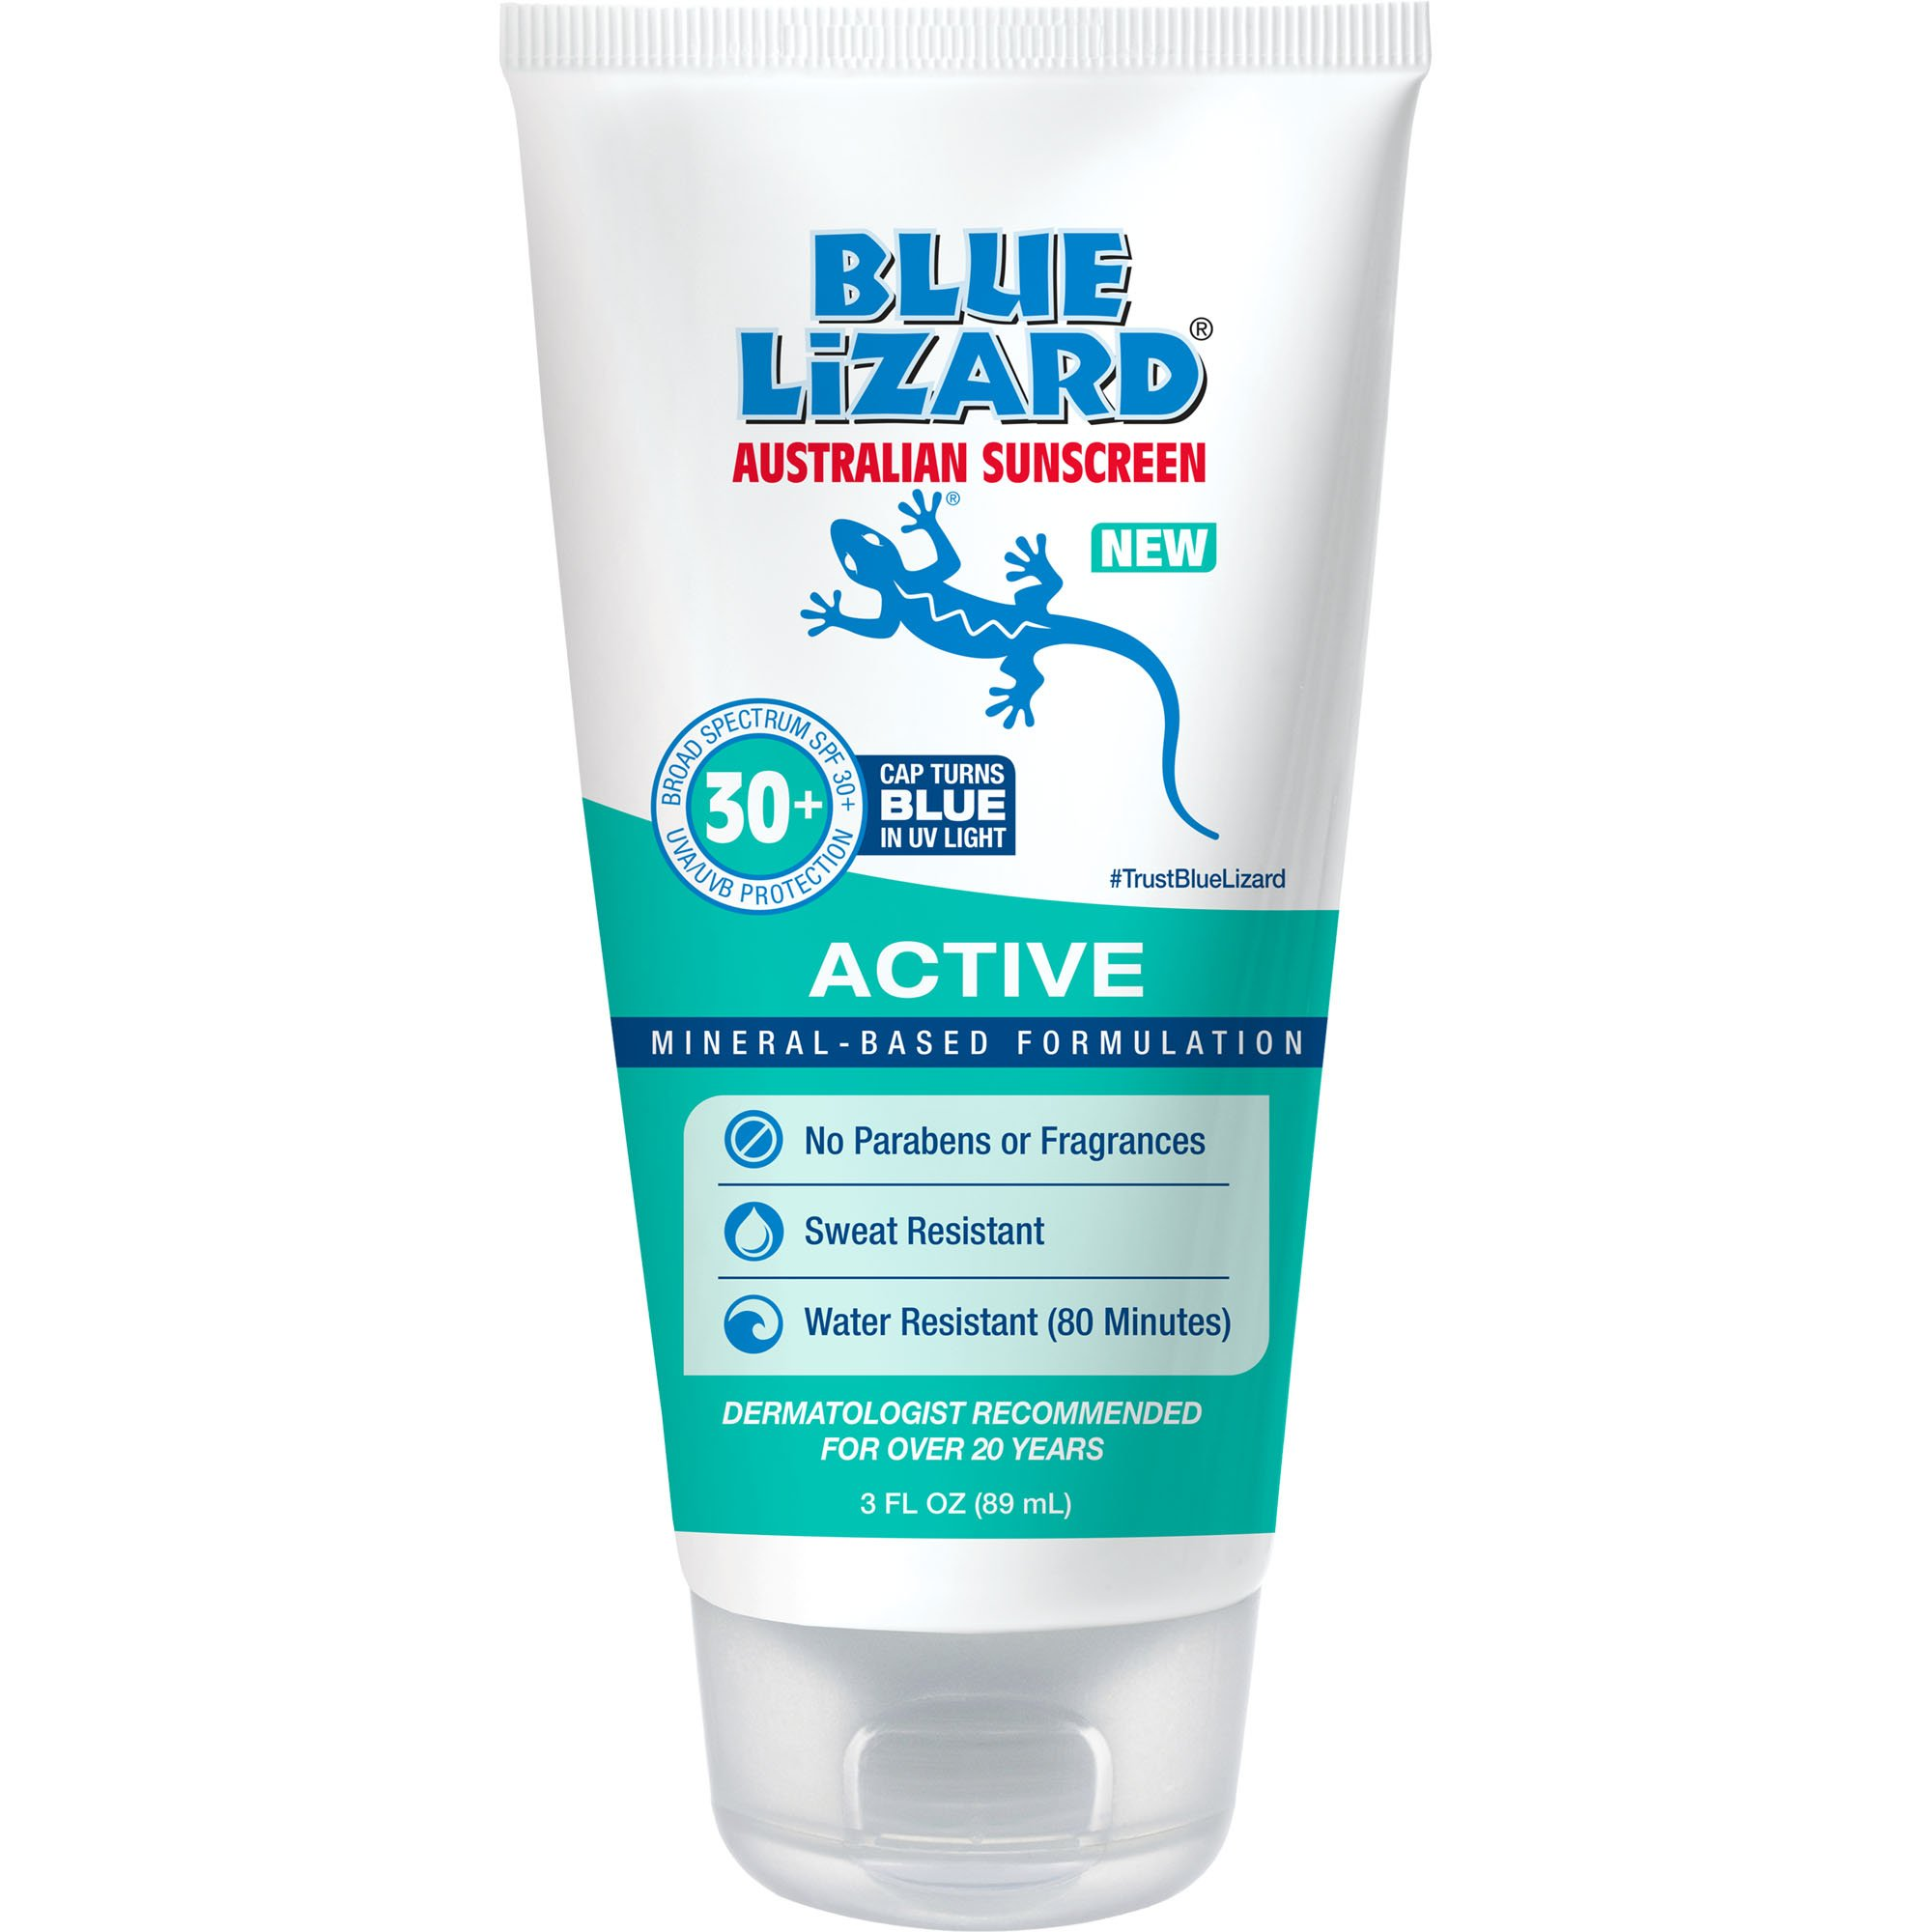 reef-friendly-sunscreen-Blue Lizard Australian Sunscreen